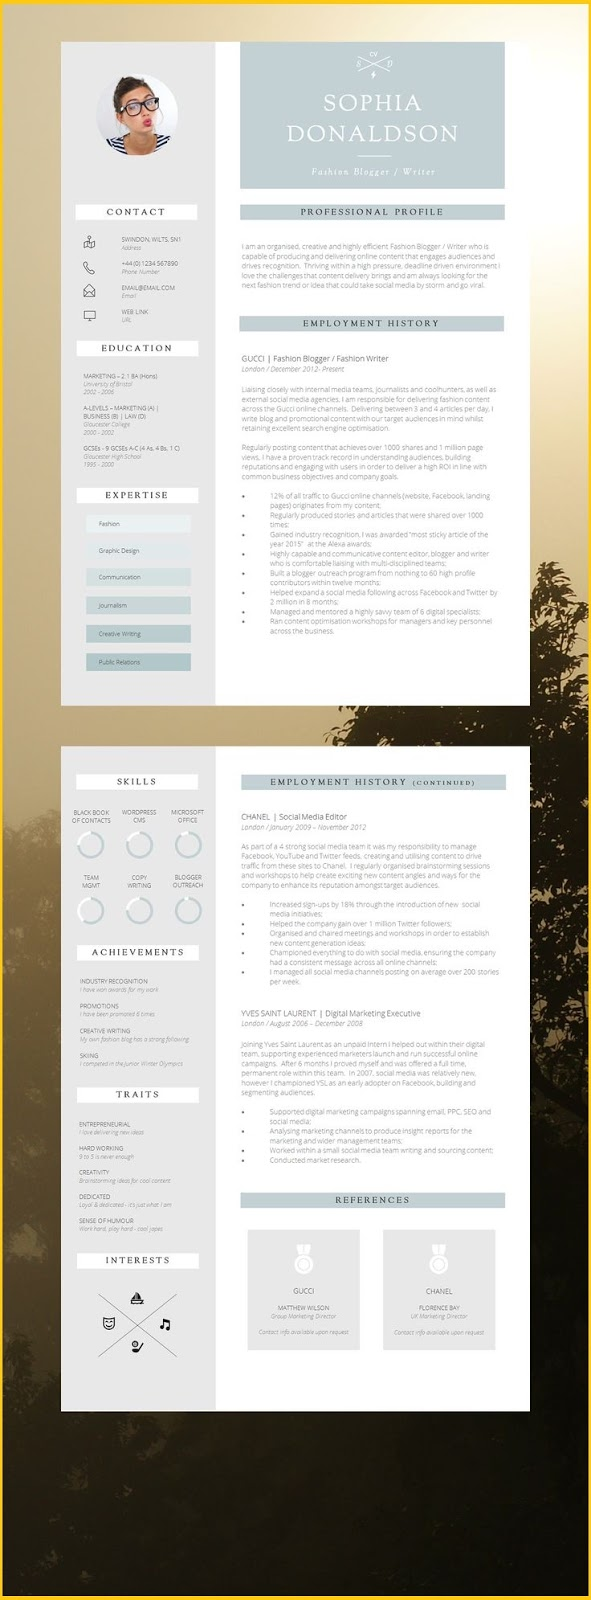 Free Modern Resume Templates Microsoft Word   Modern resume template     illustrator ideas india images it latex spanish infographic iphone  investment 2007 2010 indeed jobstreet journalism john smith japanese jsom  journalist